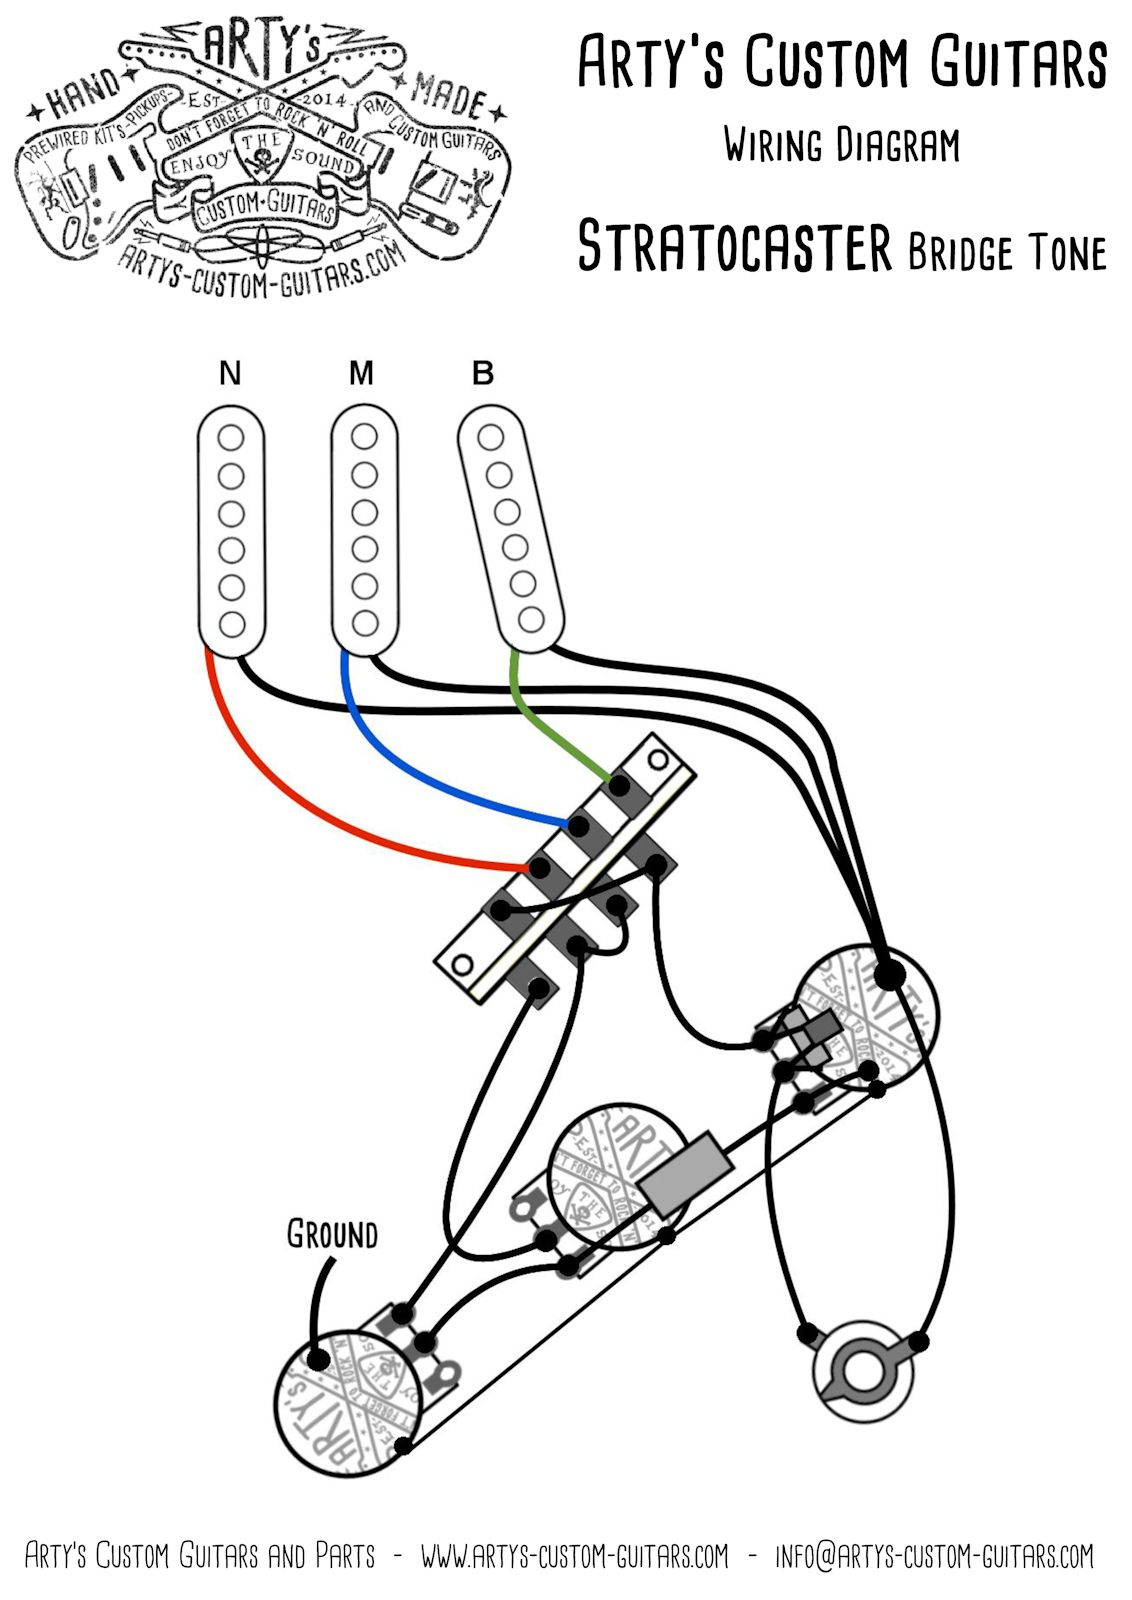 Pre Wired Strat Wiring Diagram Worksheet And Fender Guitar Hss Rothstein Guitars Serious Tone St Bridge Control Vintage Kit Stratocaster Rh Pinterest Com Pickup Pickguard